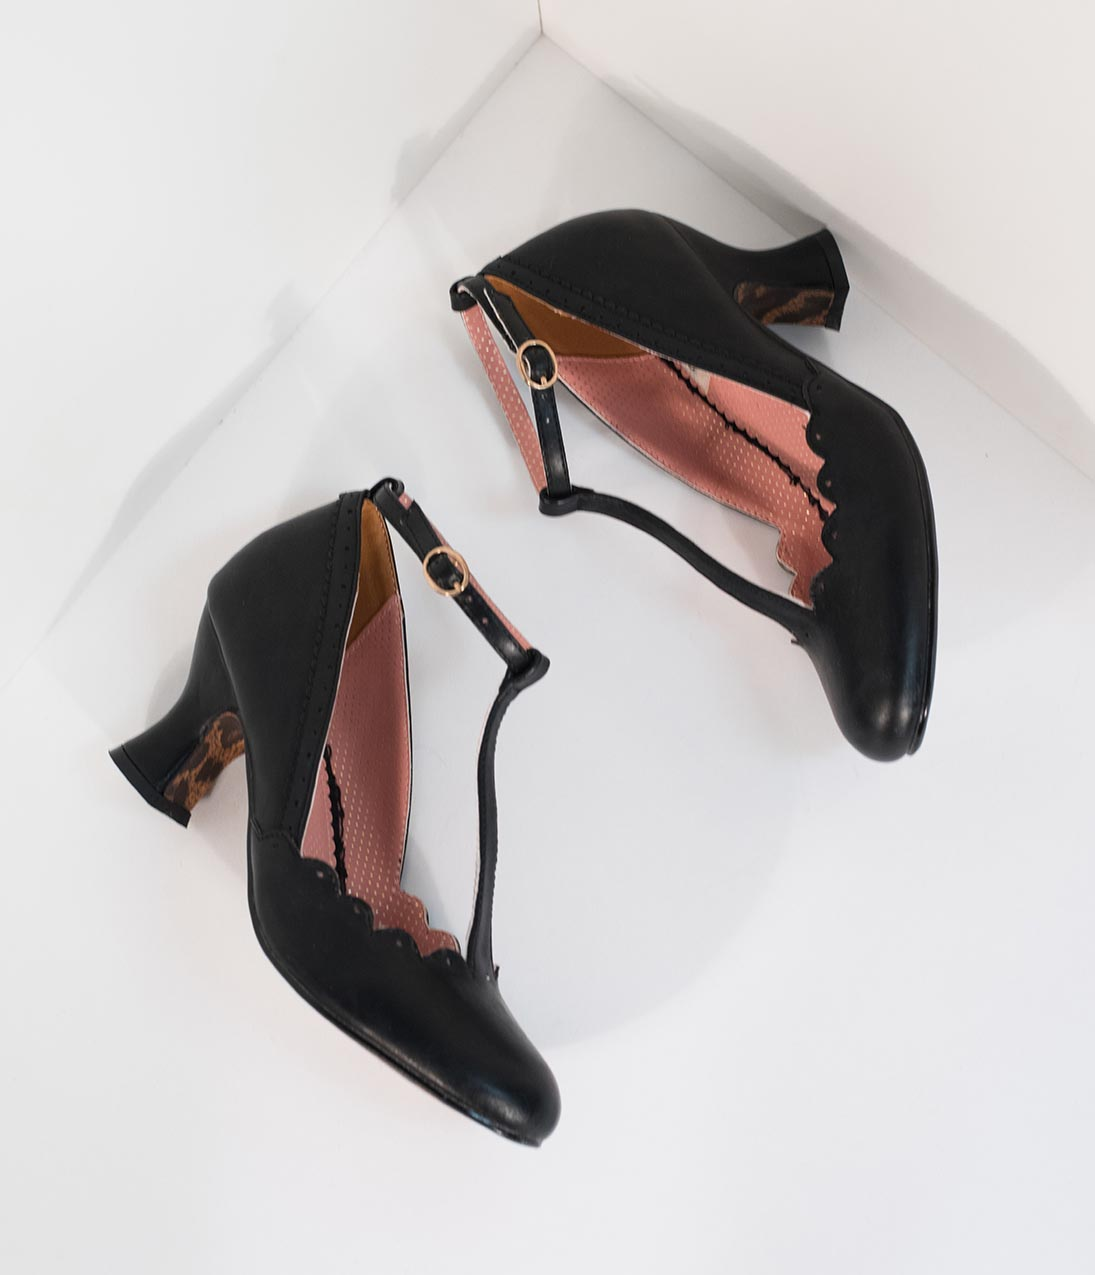 1940s Style Shoes, 40s Shoes Bettie Page 1940S Black Leatherette Penny Scalloped T-Strap Heels $78.00 AT vintagedancer.com